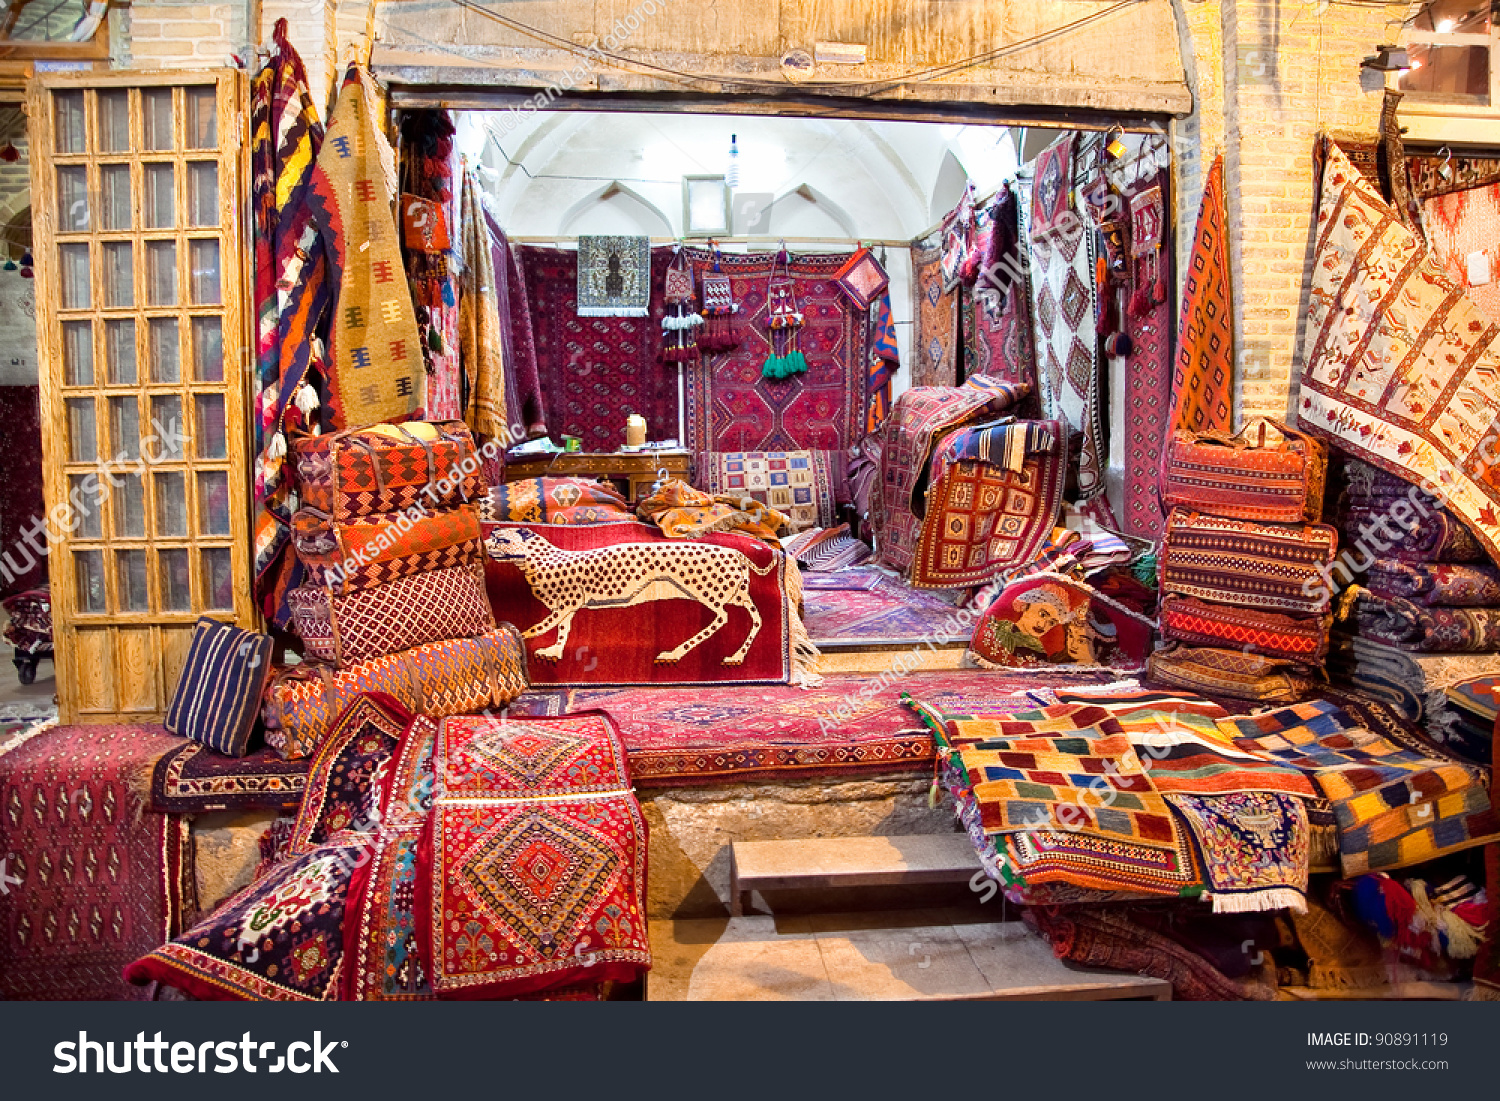 Shop Persian Carpets Iranian Carpets Rugs Stock Photo